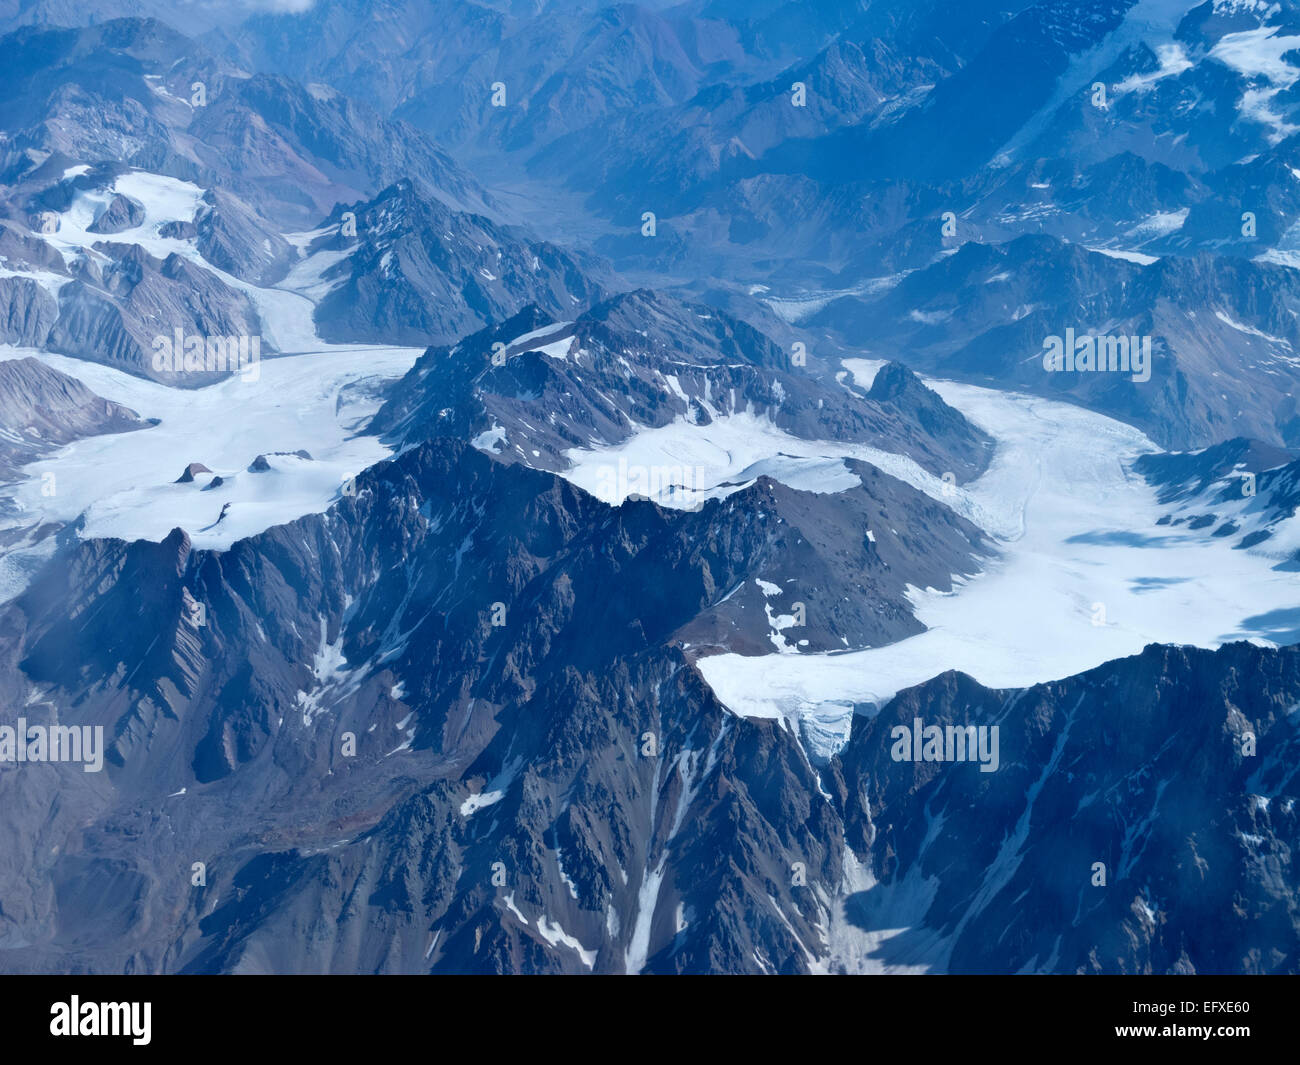 Range of the Andes between Argentina and Chile. Aerial Photography. - Stock Image